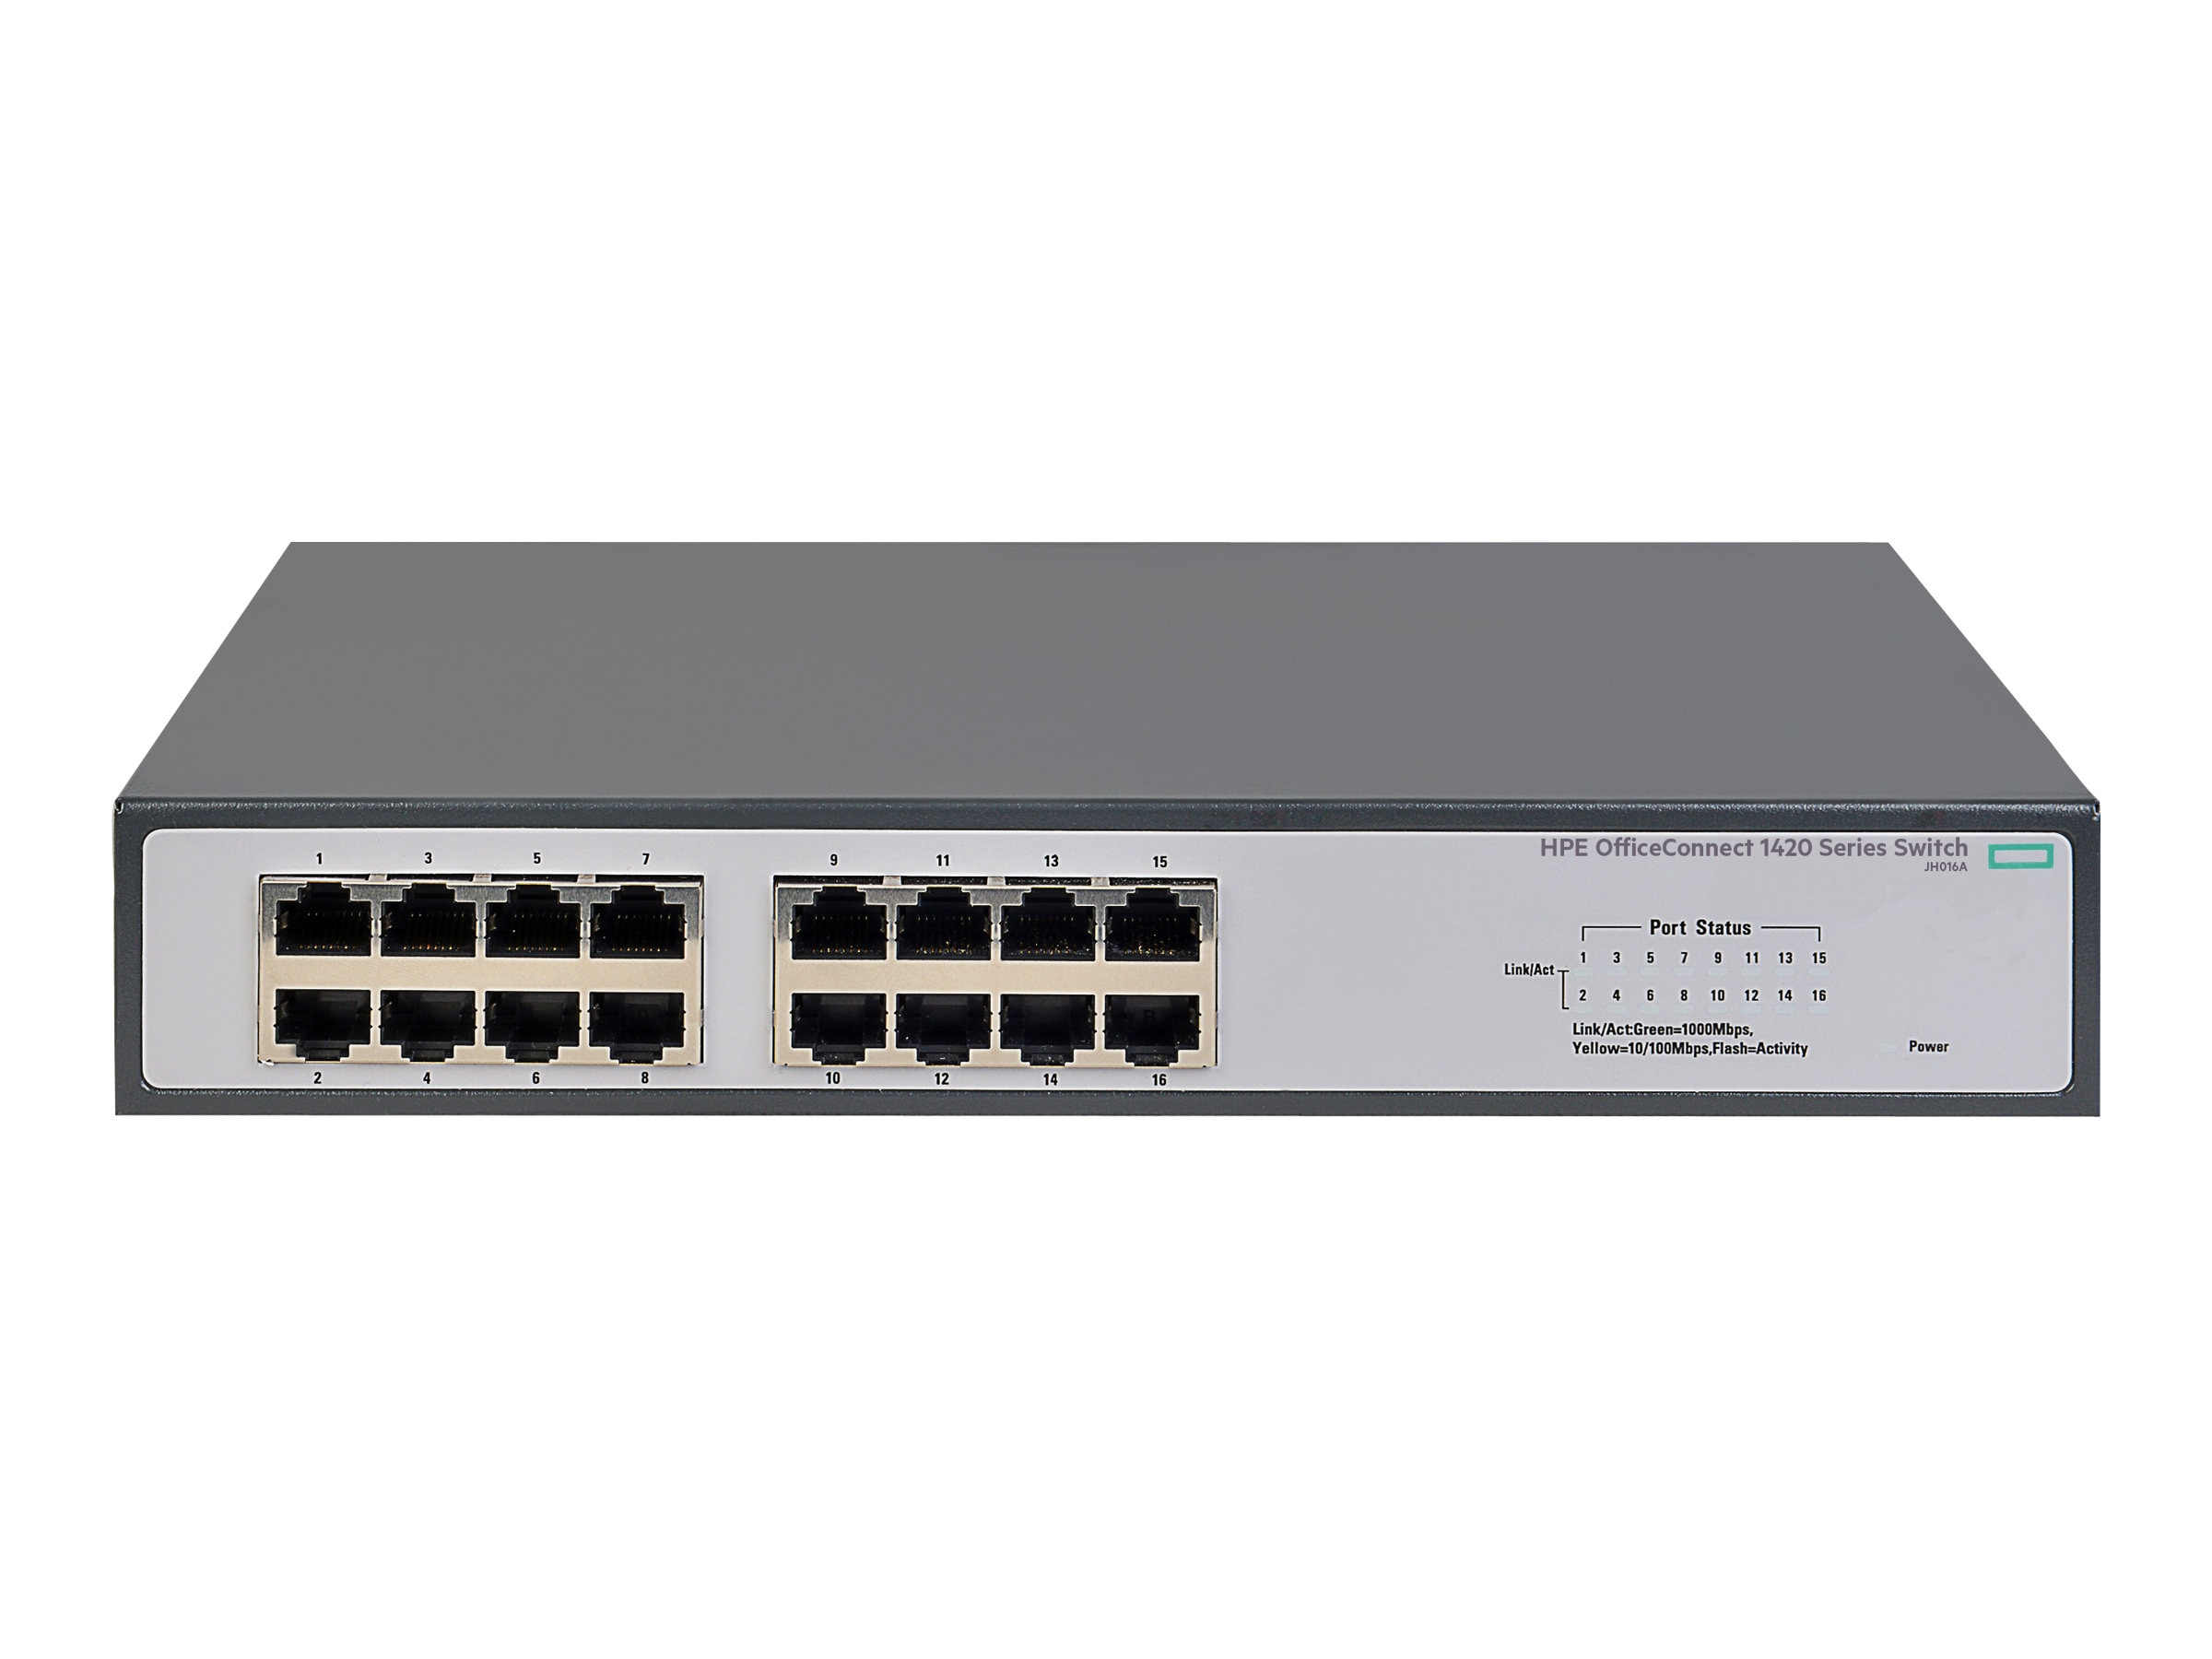 HPE 1420-16G Switch, JH016A